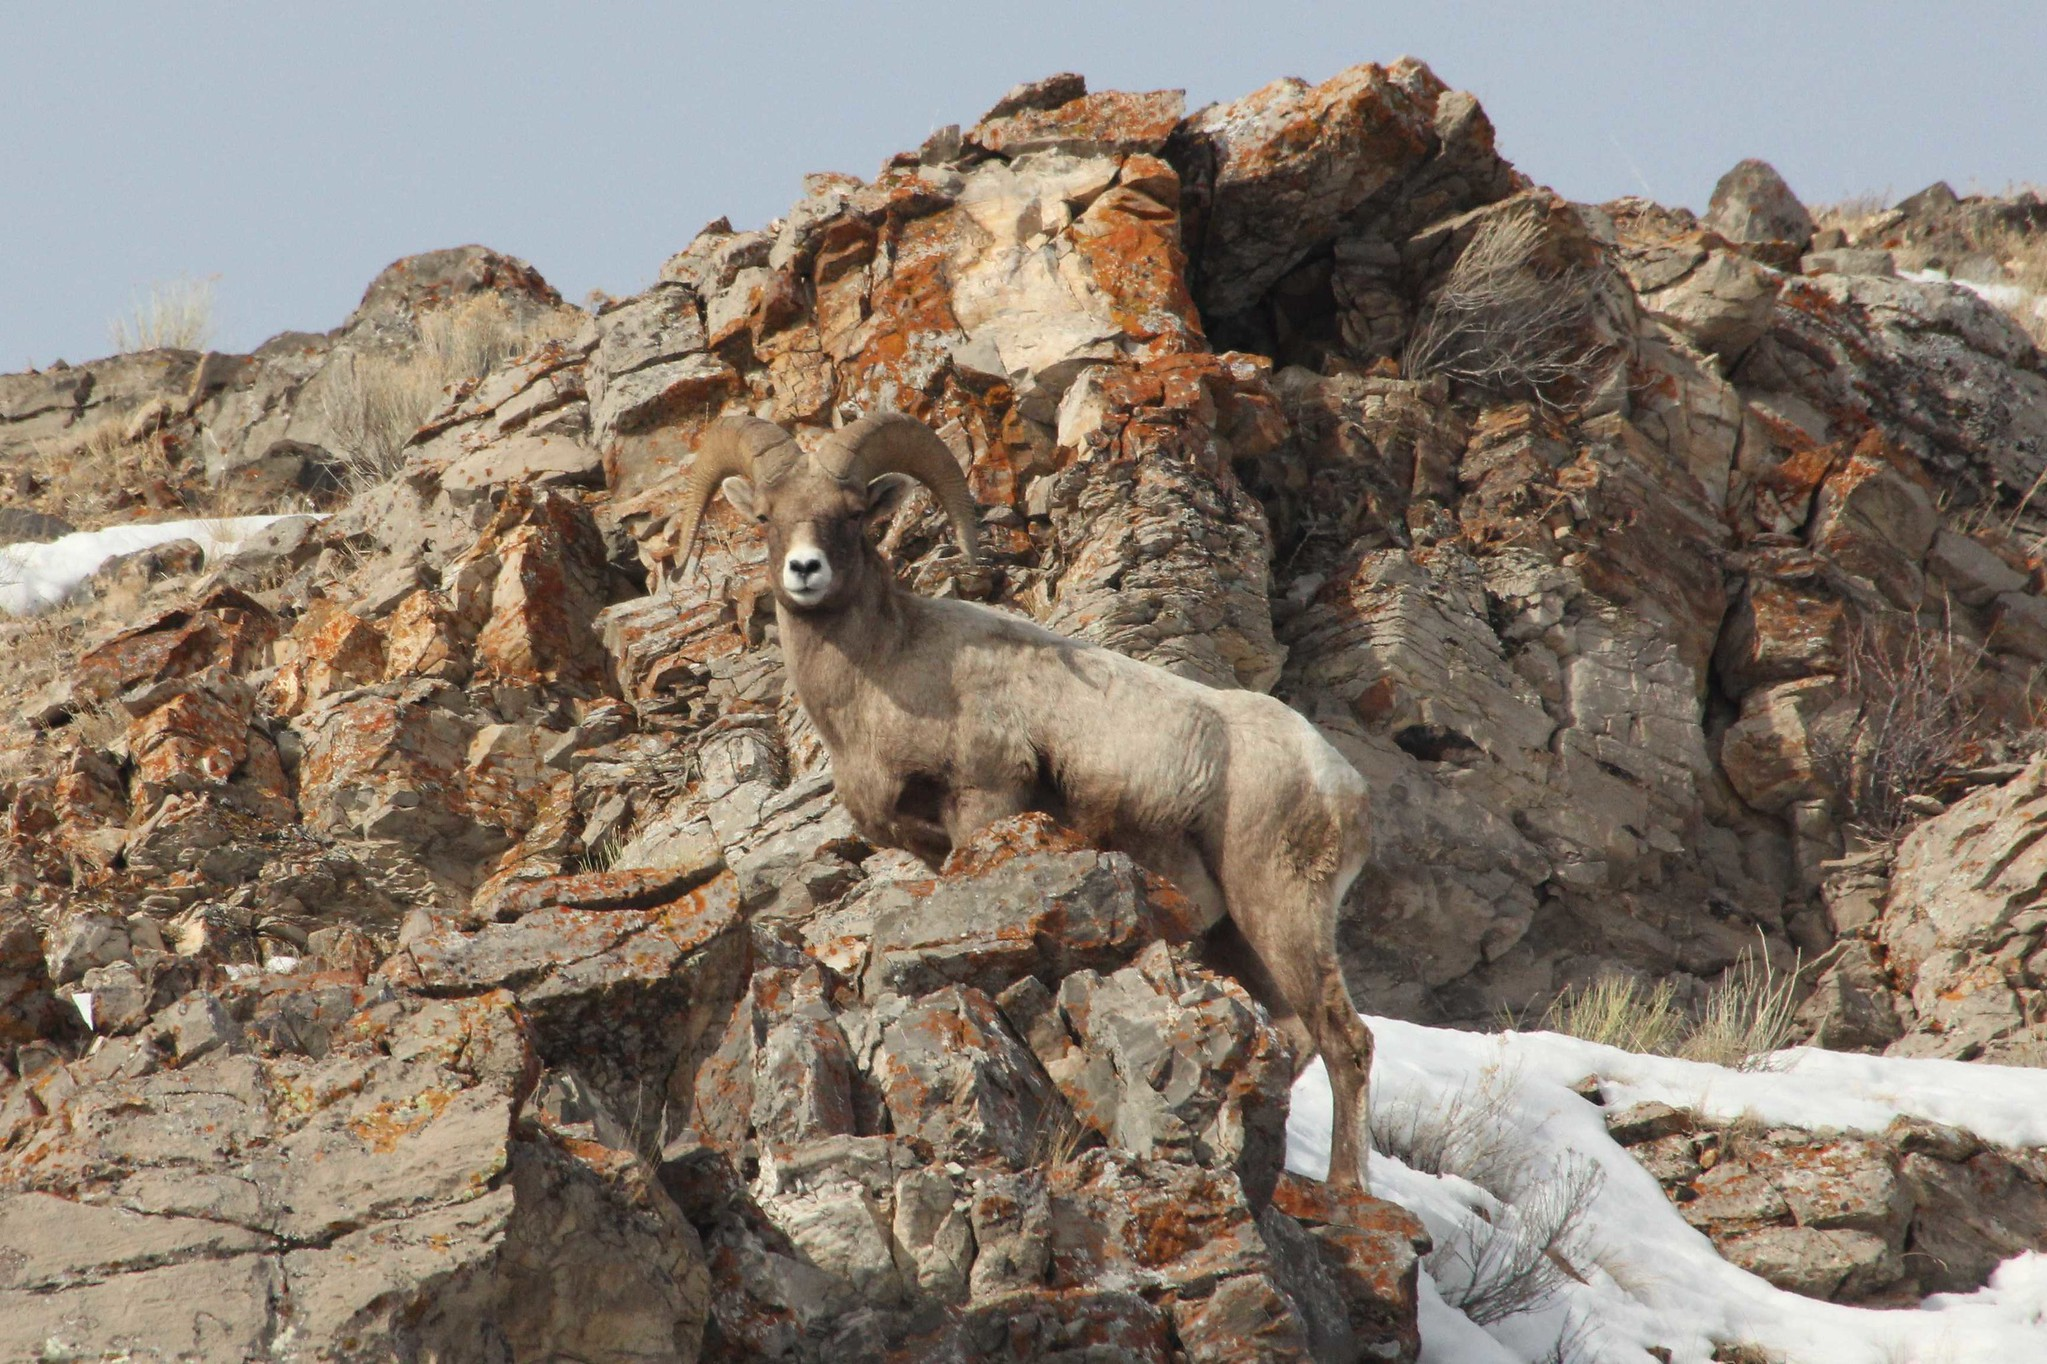 Adult bighorn sheep standing on rock cliffs with snow